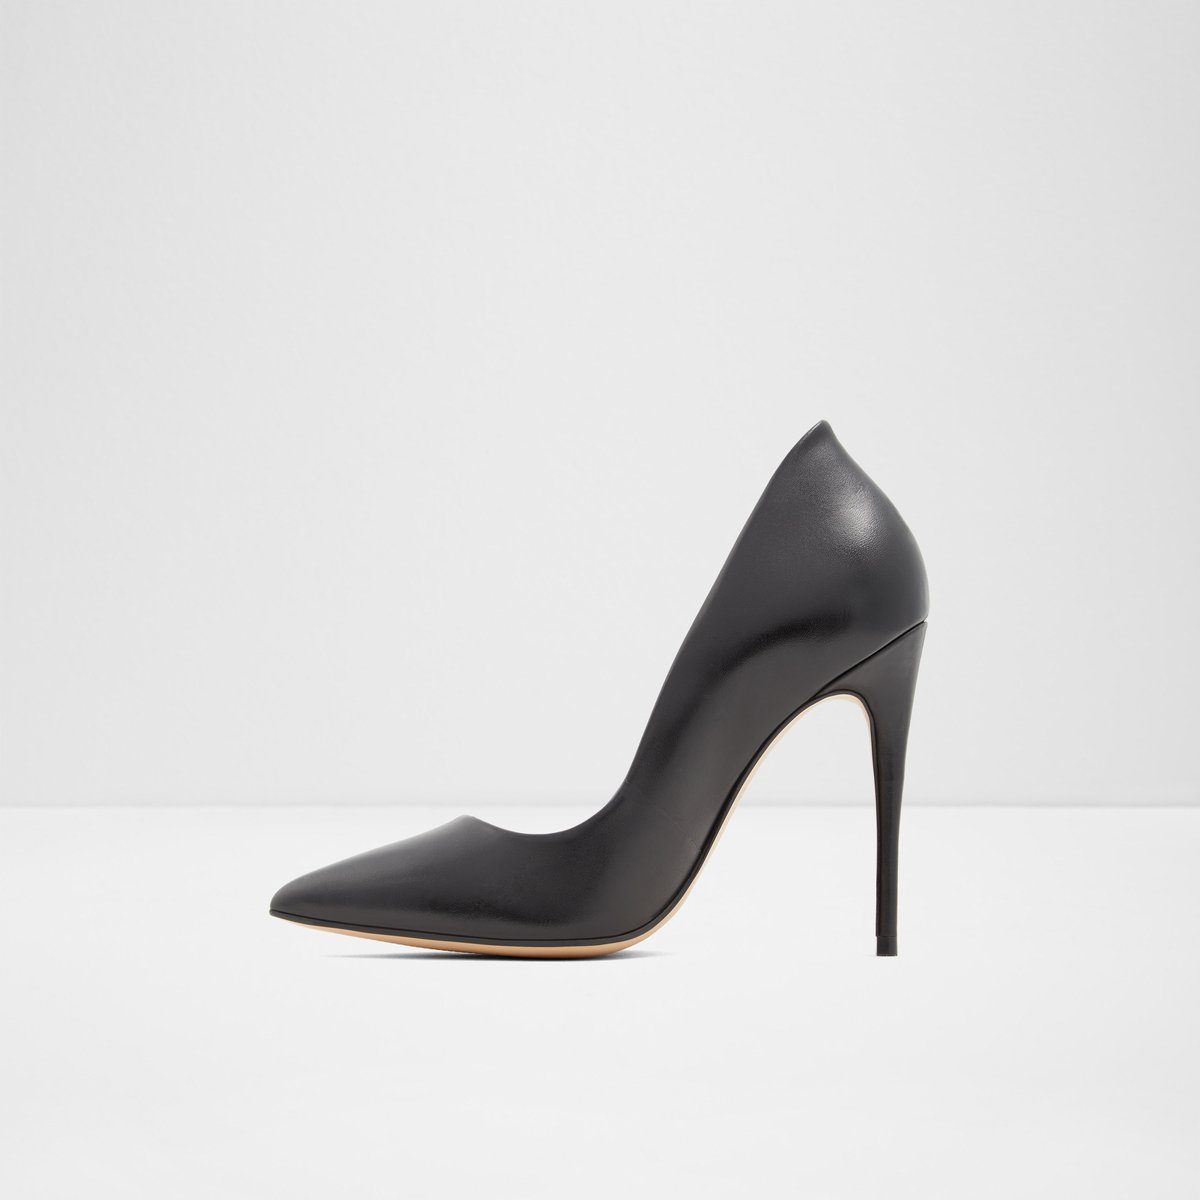 Cassedy Black Leather Smooth Women's